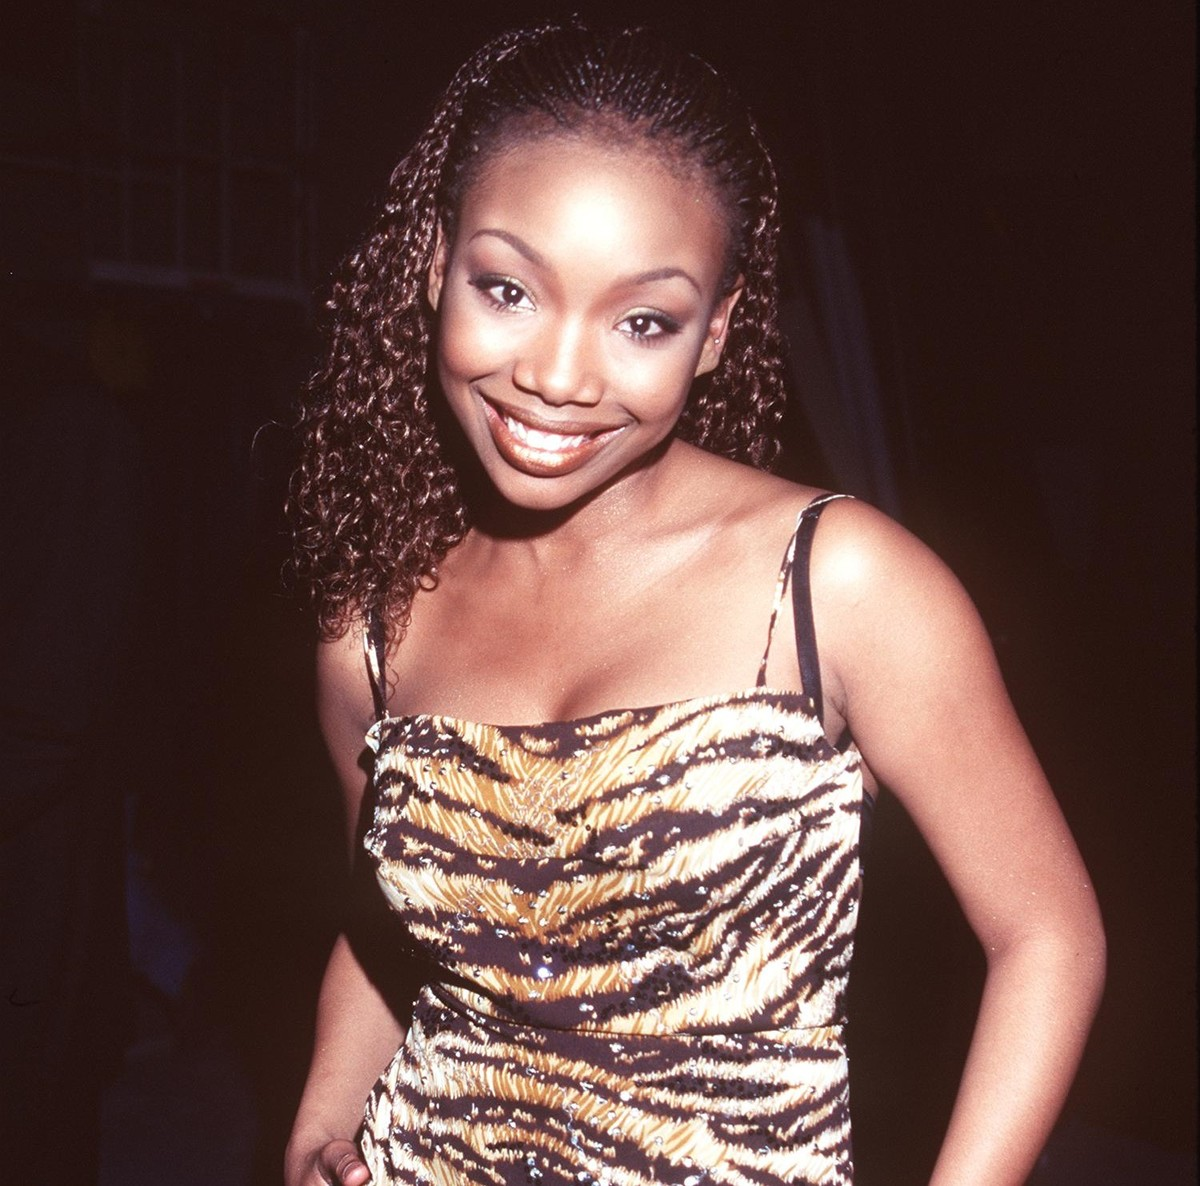 The singer Brandy smiles for a photo.